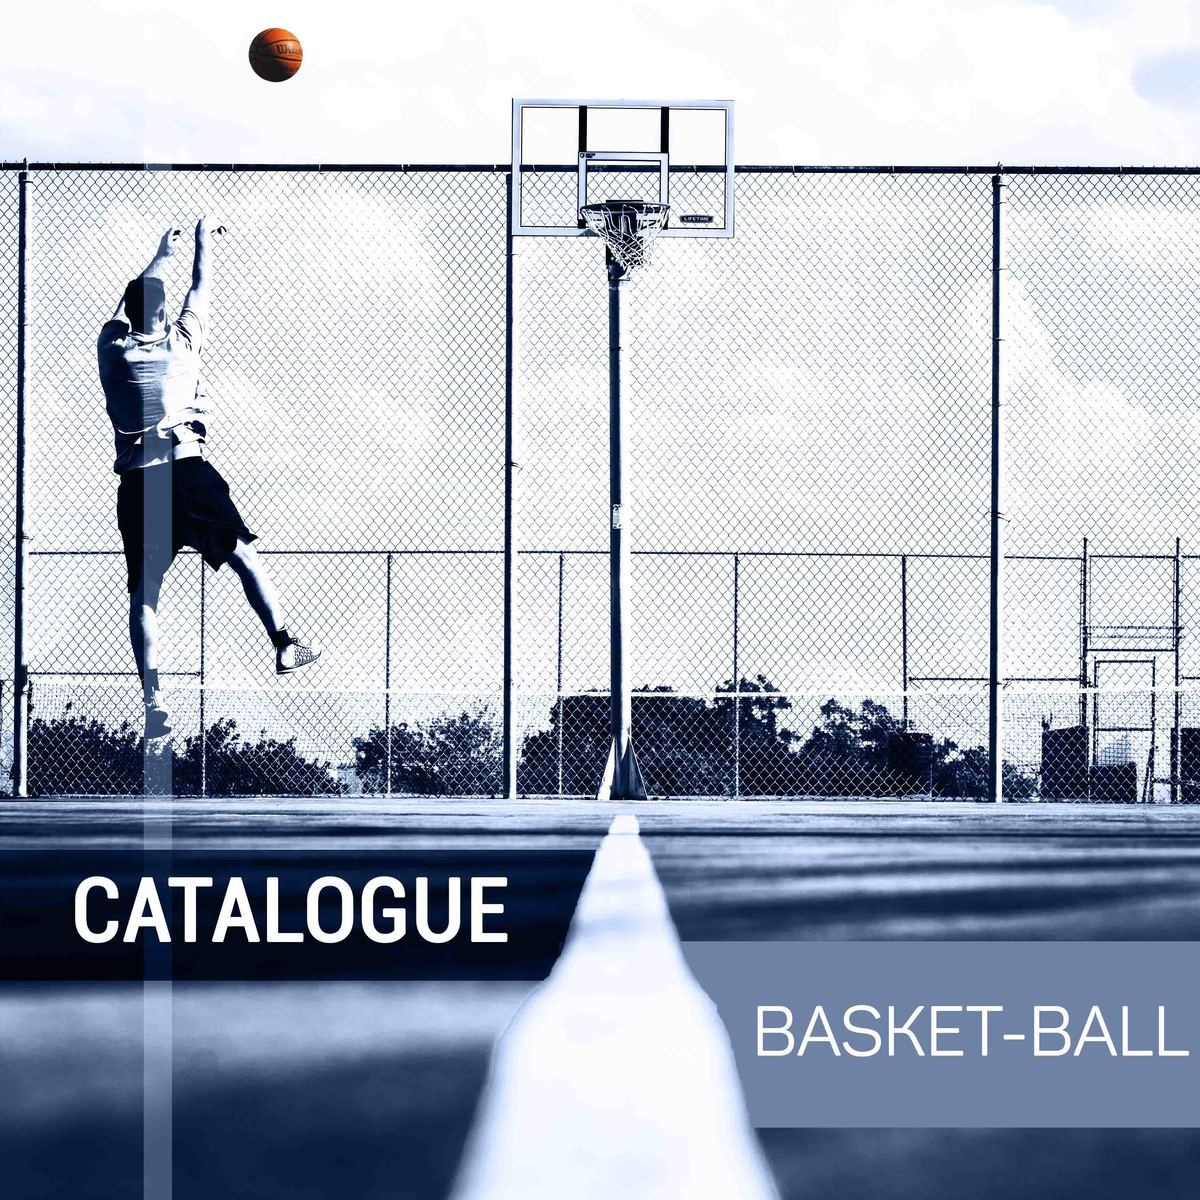 Image_catalogue-basketball-pre_sentation-1--0-0--760f0ae4-aaf0-4bbb-89a7-fcb995d54aa1